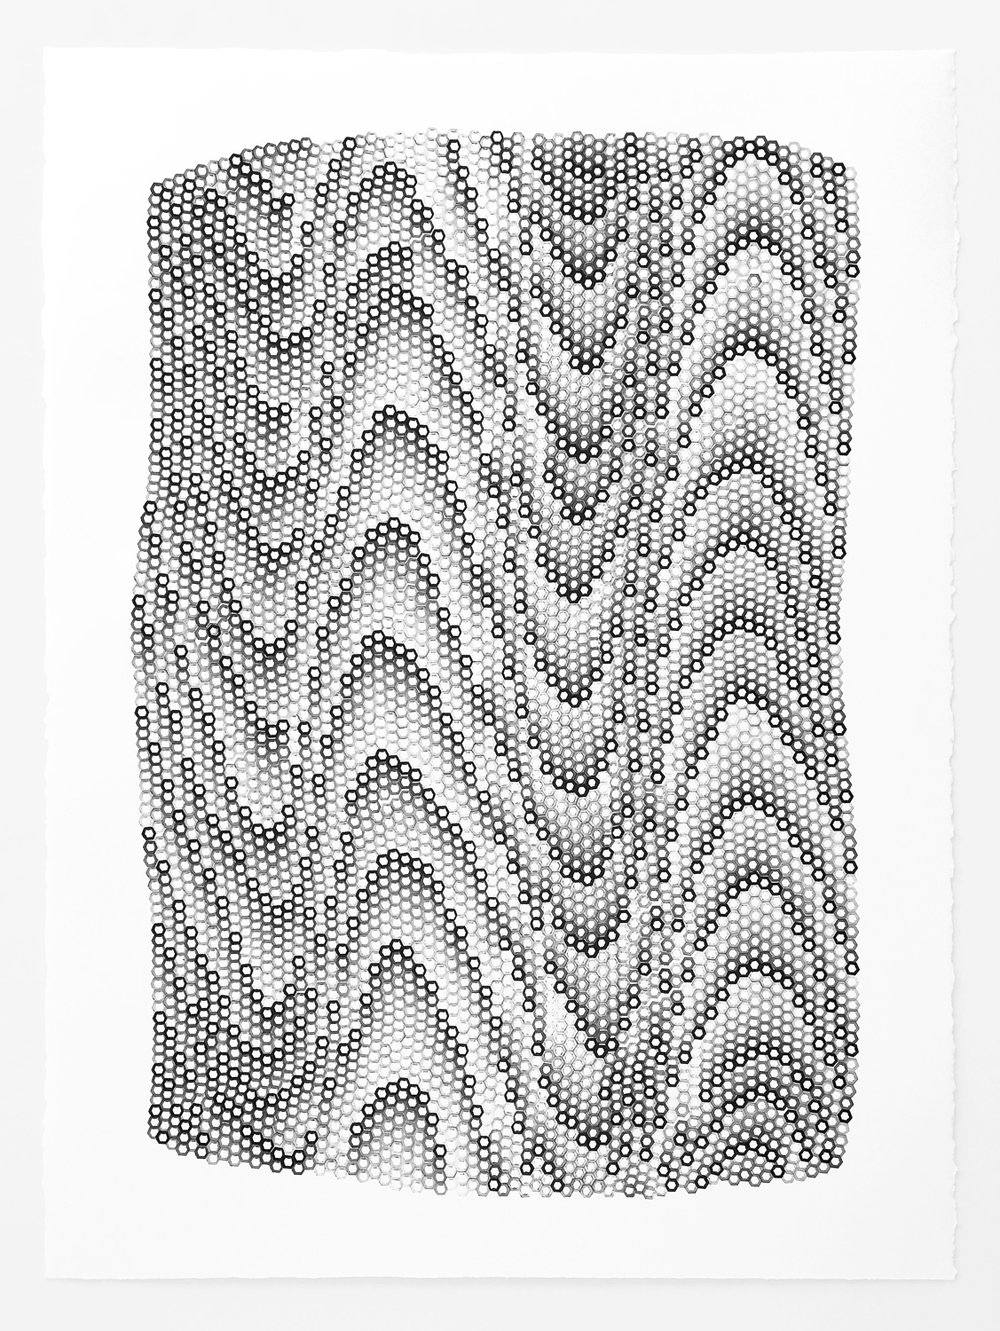 Hexagons 2 ,  2018   stamped archival ink on 140 lb hot press watercolor paper 30 x 22 in (76.2 x 55.9 cm)